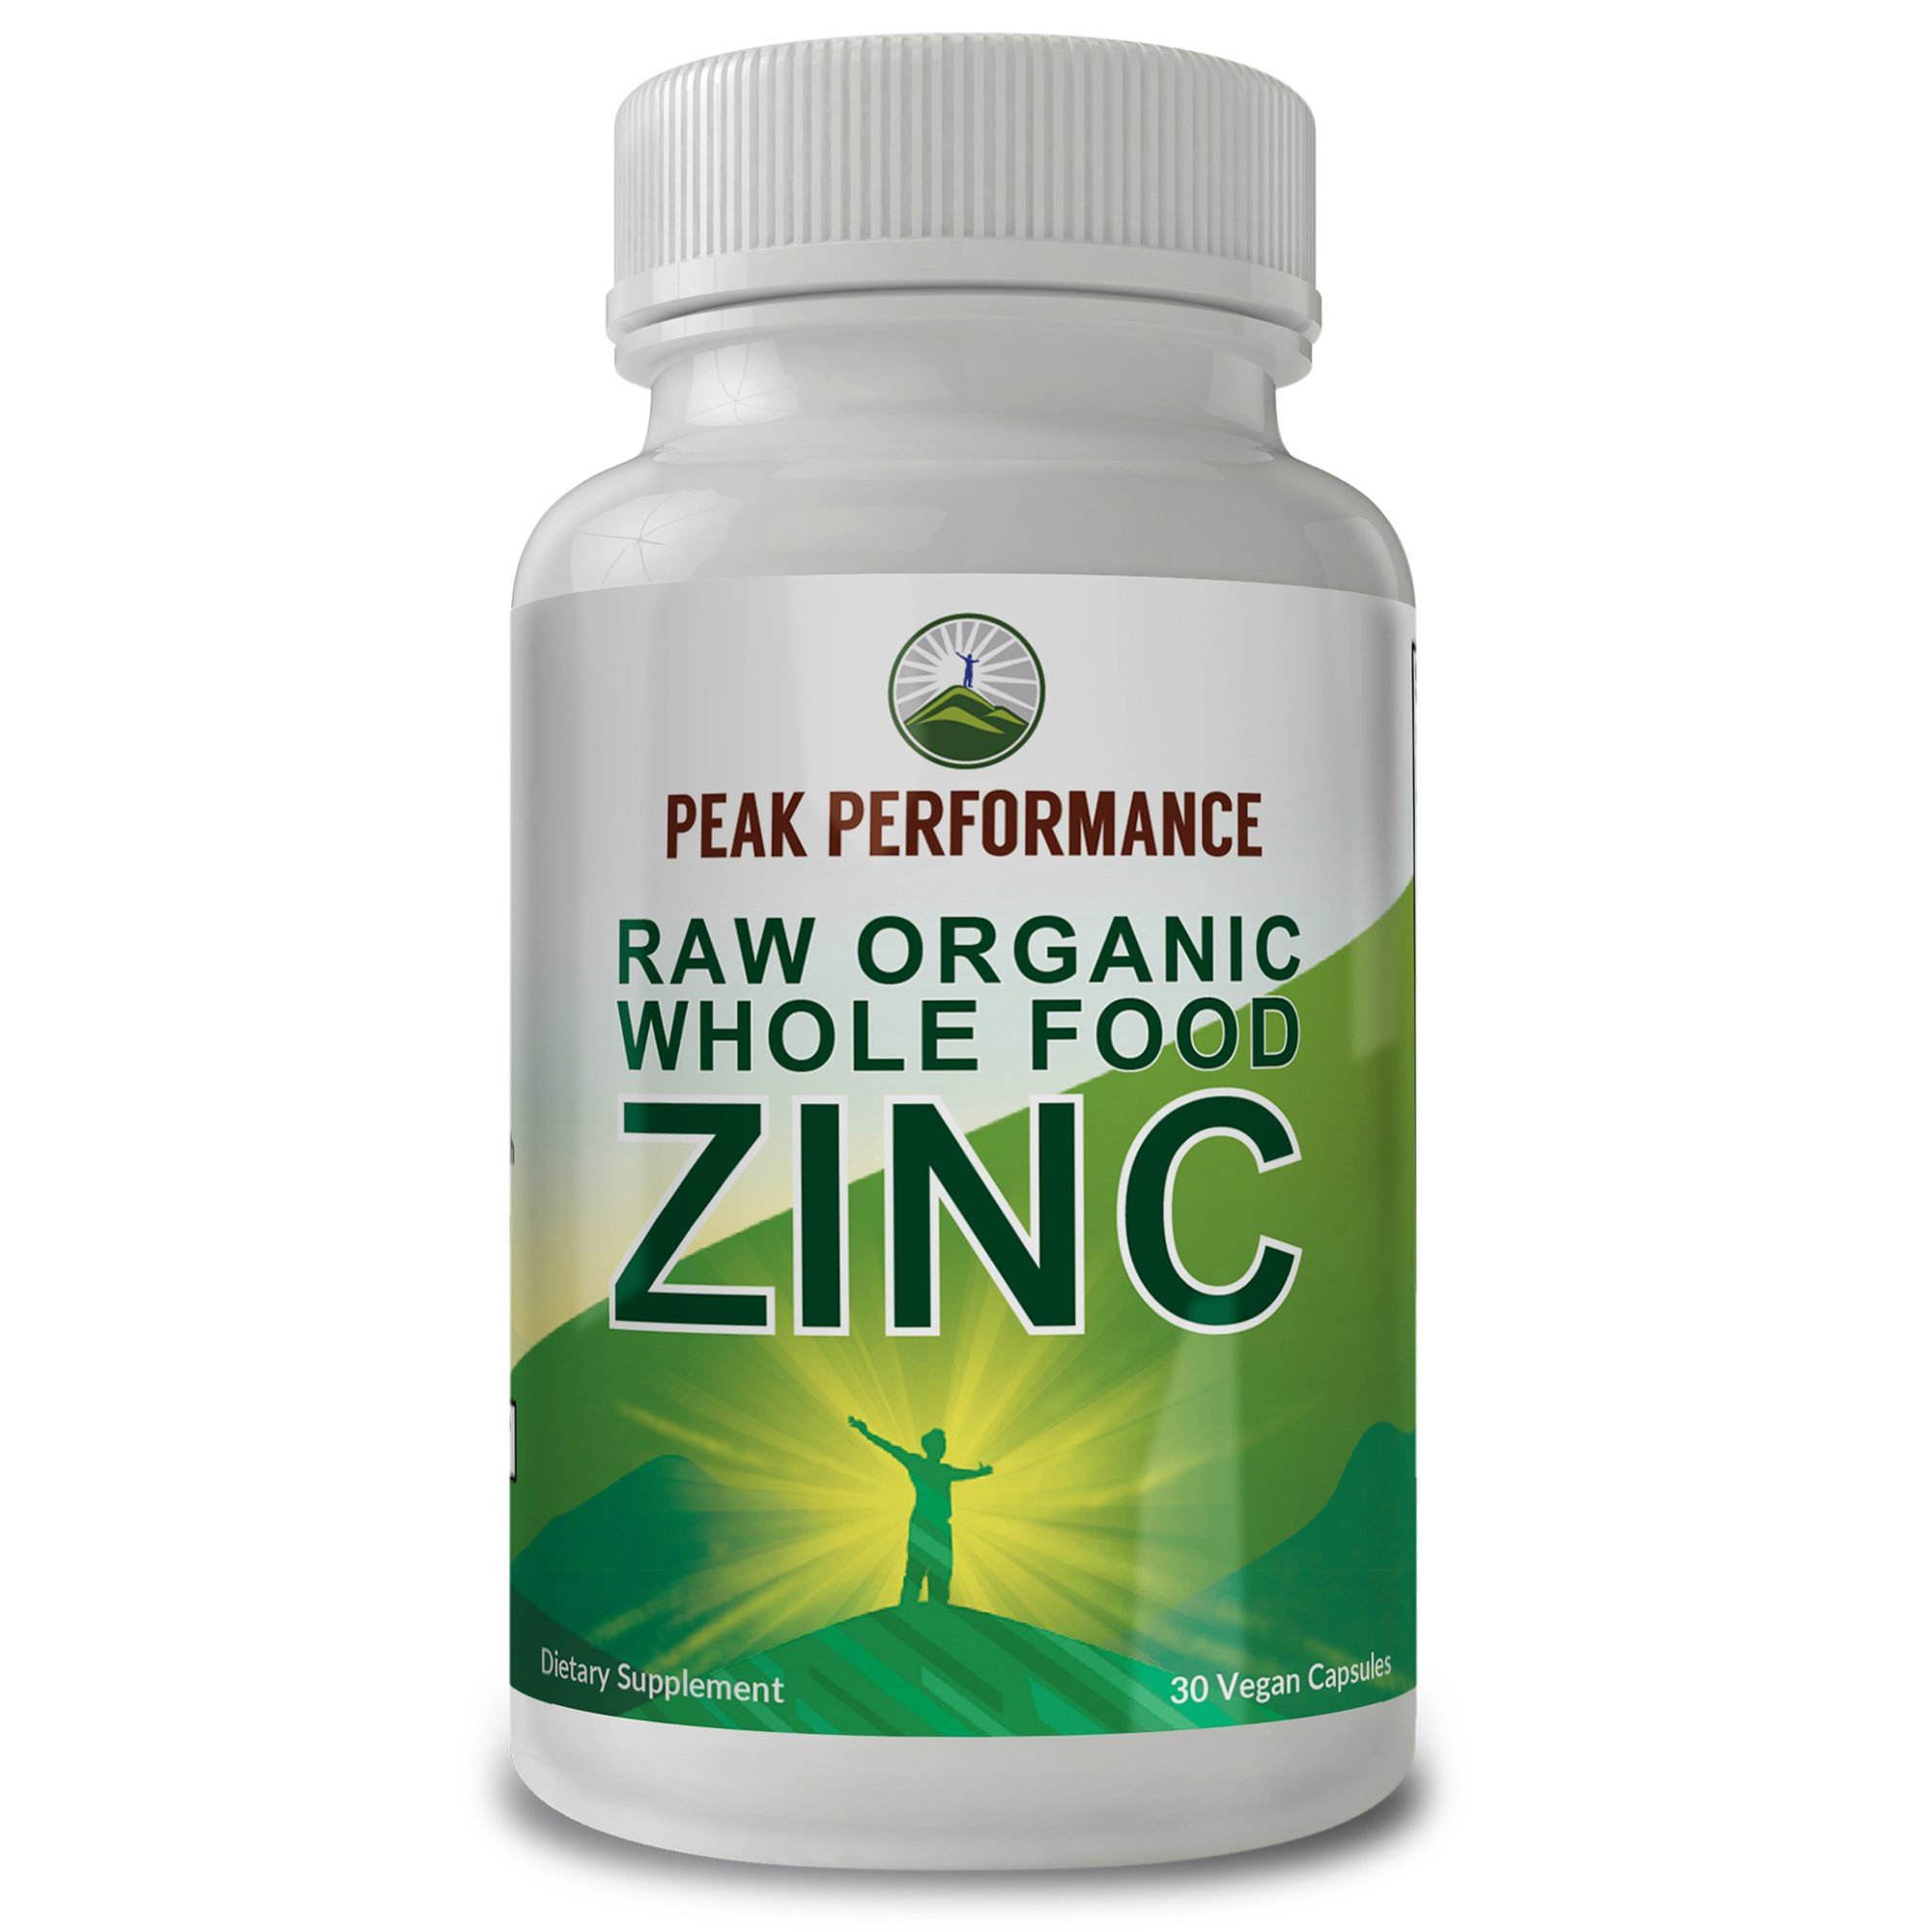 Raw Organic Whole Food Zinc by Peak Performance with Vitamin C & Over 25 Organic Fruit and Vegetable Ingredients. for Prostate Support, Immune and Cardiovascular Health. 30 Vegan Capsules